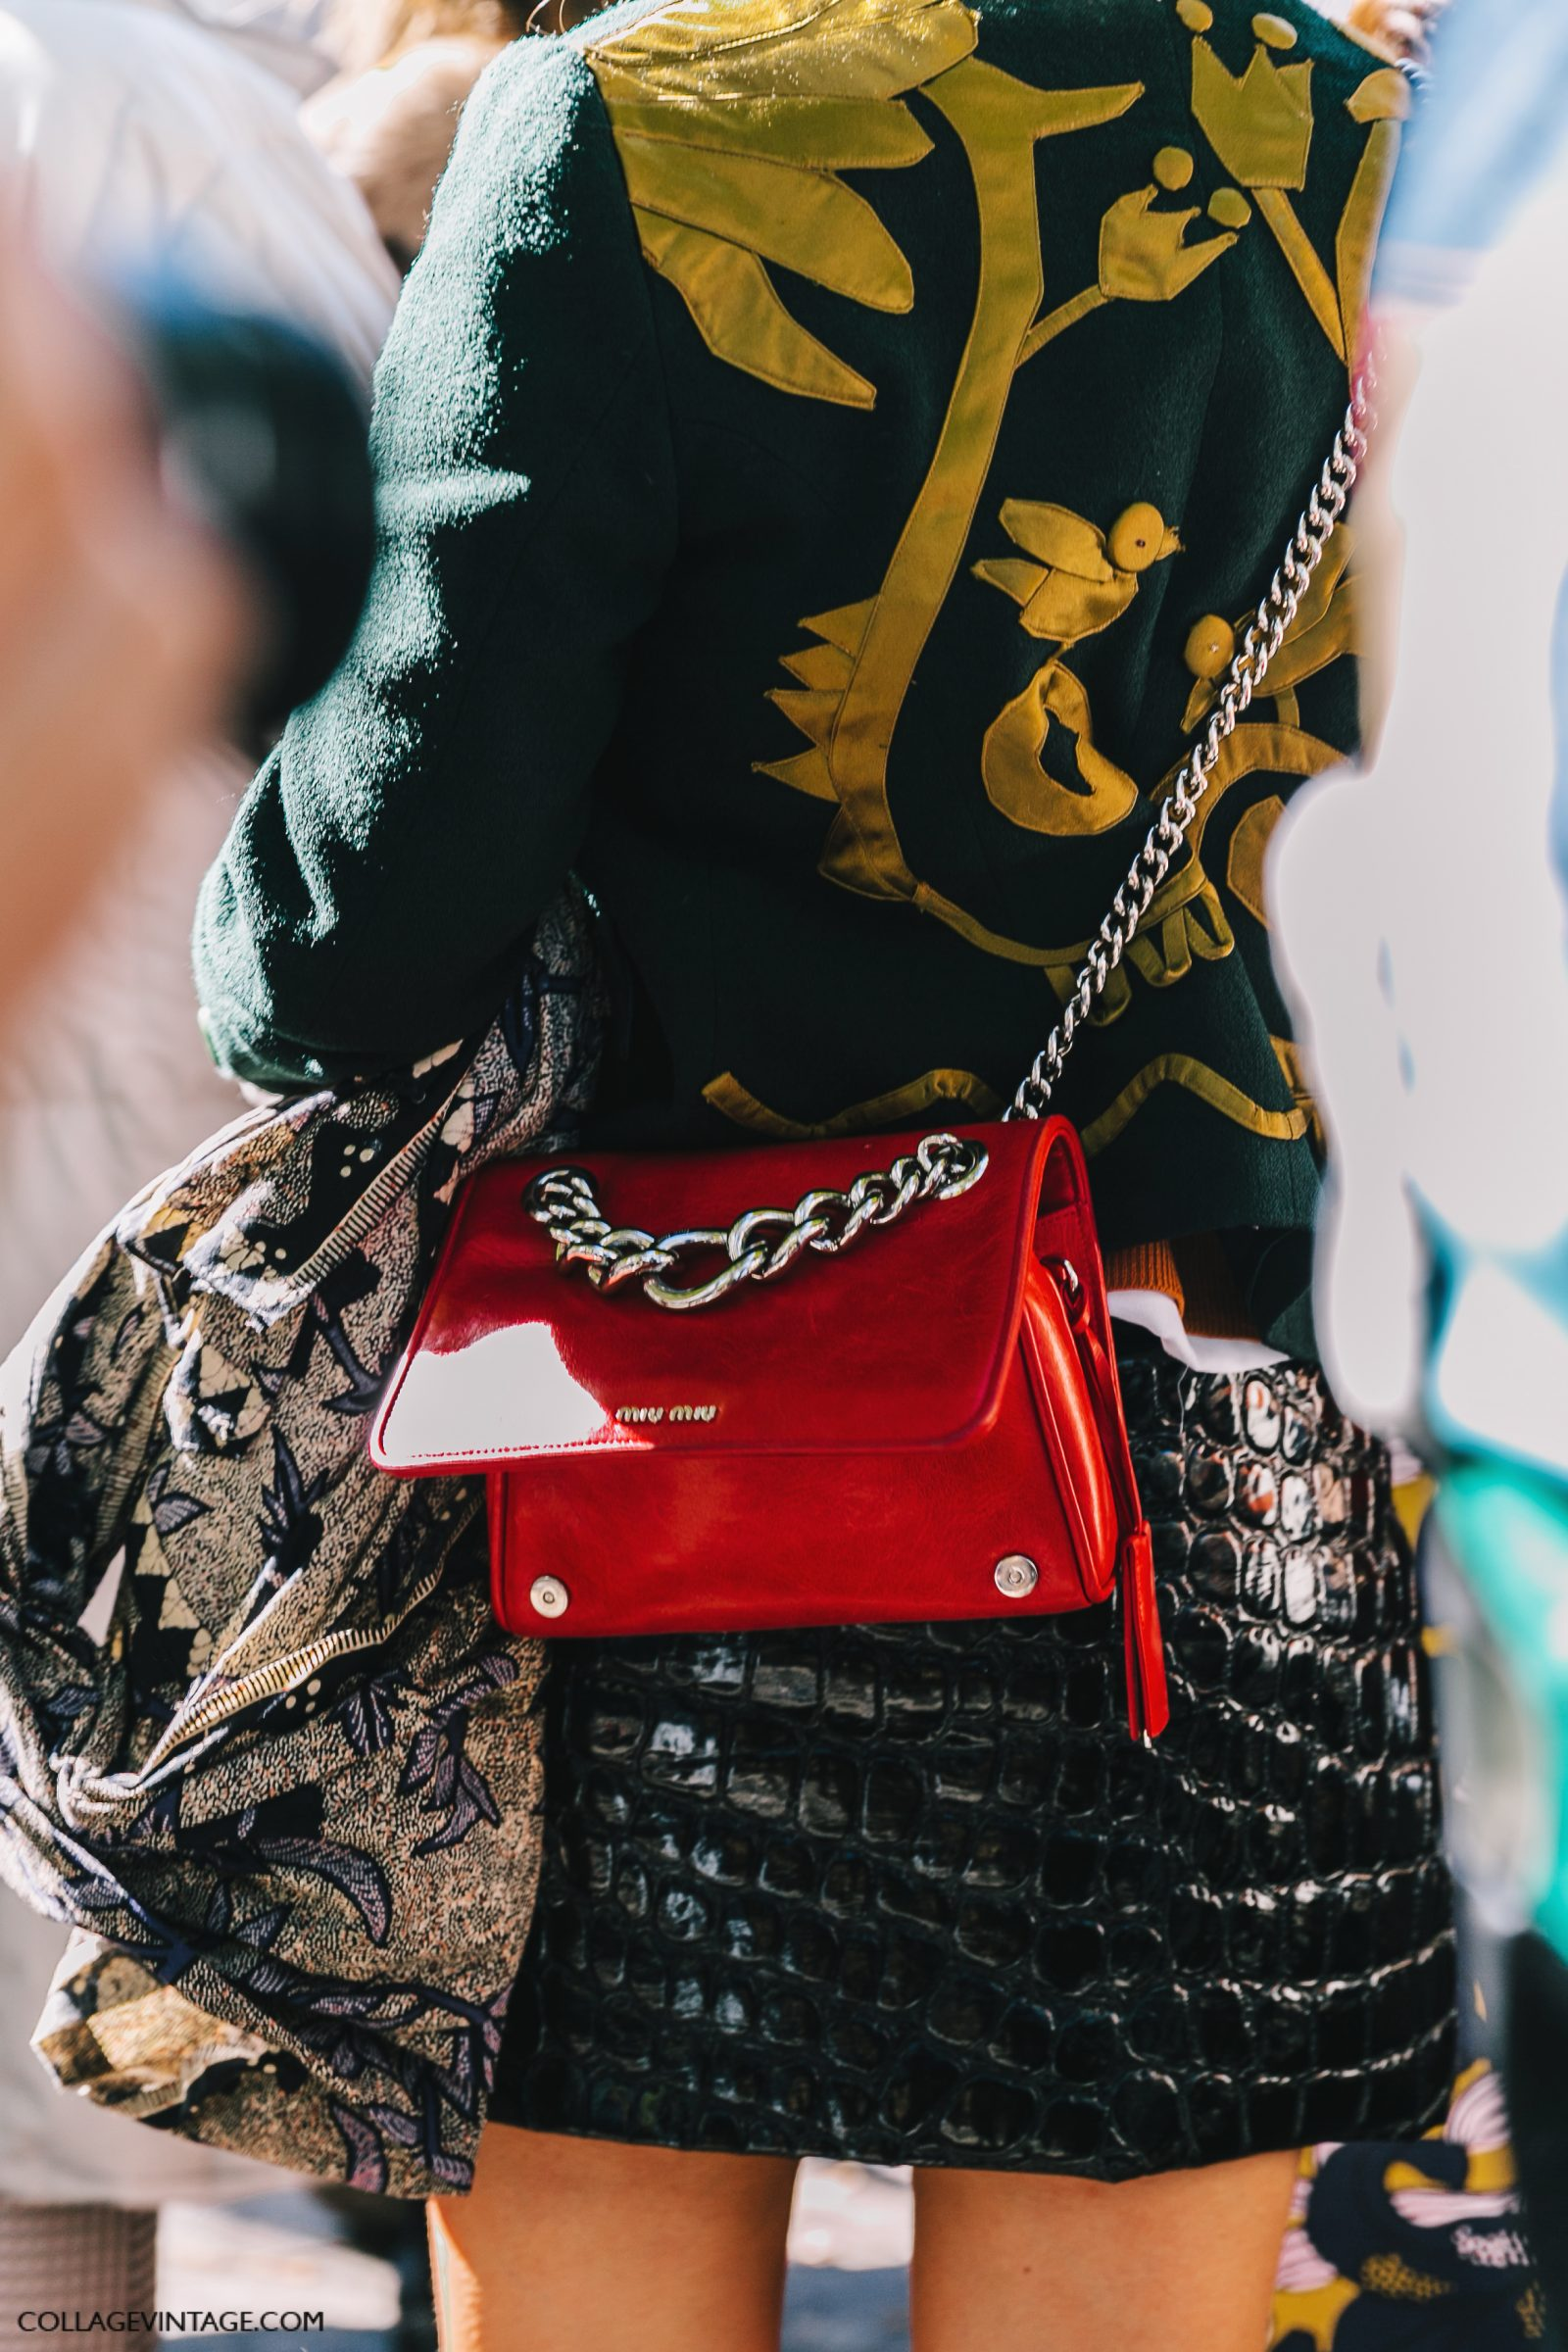 pfw-paris_fashion_week_ss17-street_style-outfit-collage_vintage-louis_vuitton-miu_miu-64